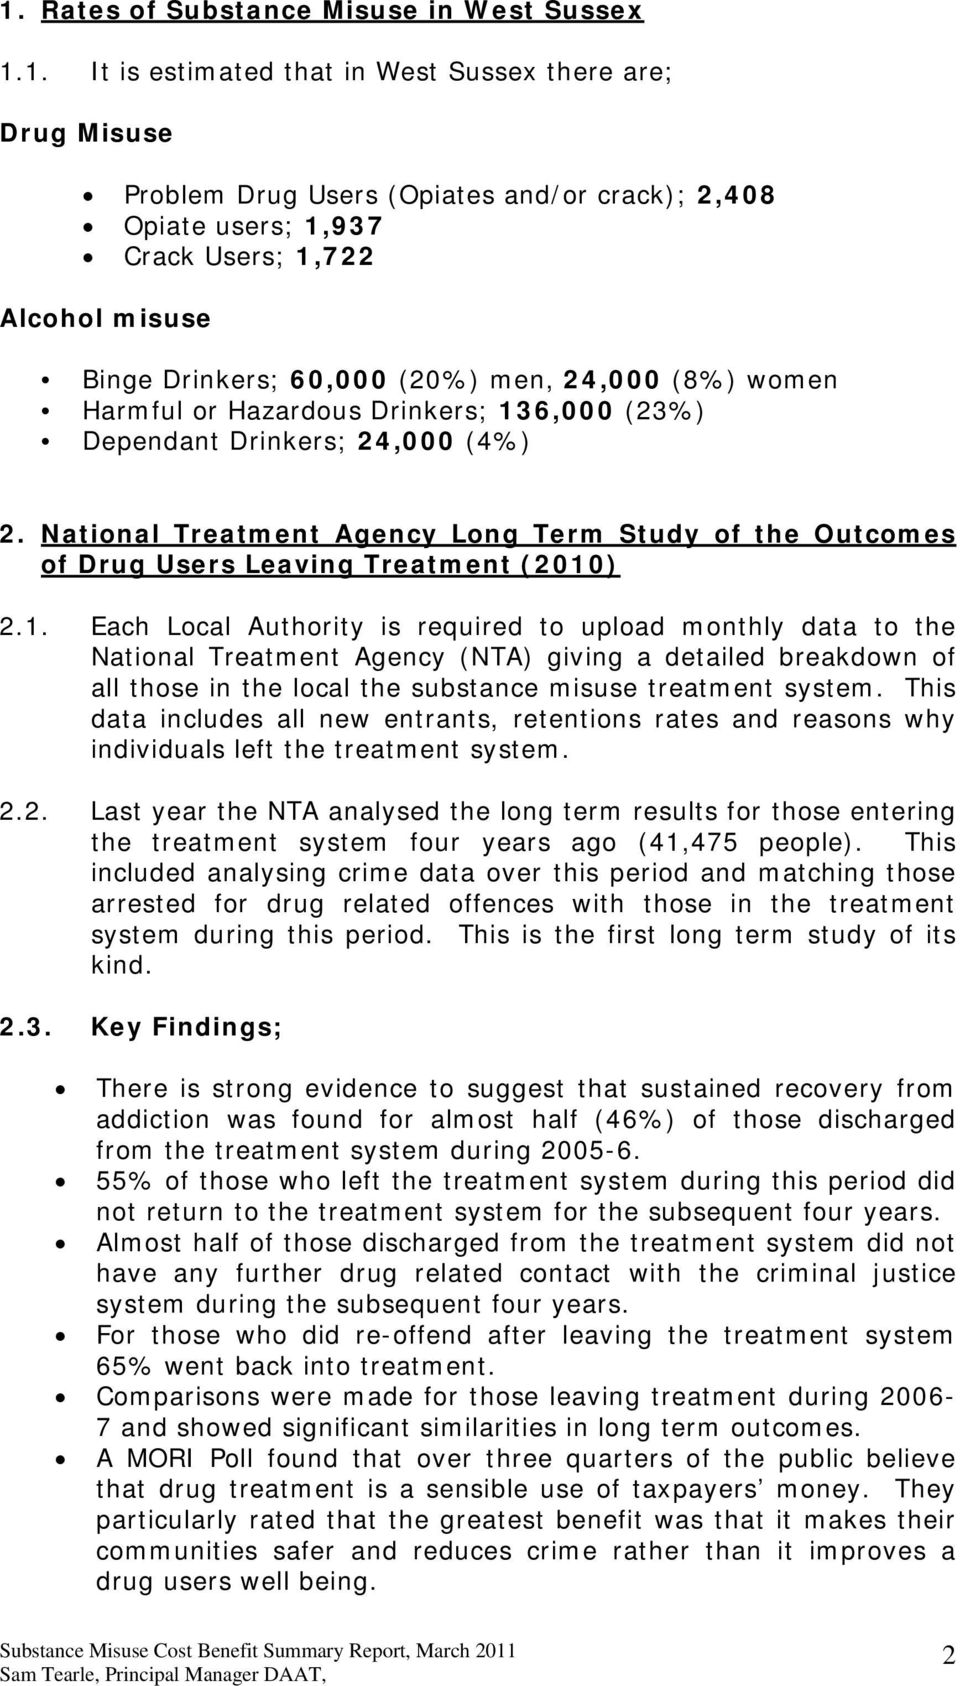 National Treatment Agency Long Term Study of the Outcomes of Drug Users Leaving Treatment (2010